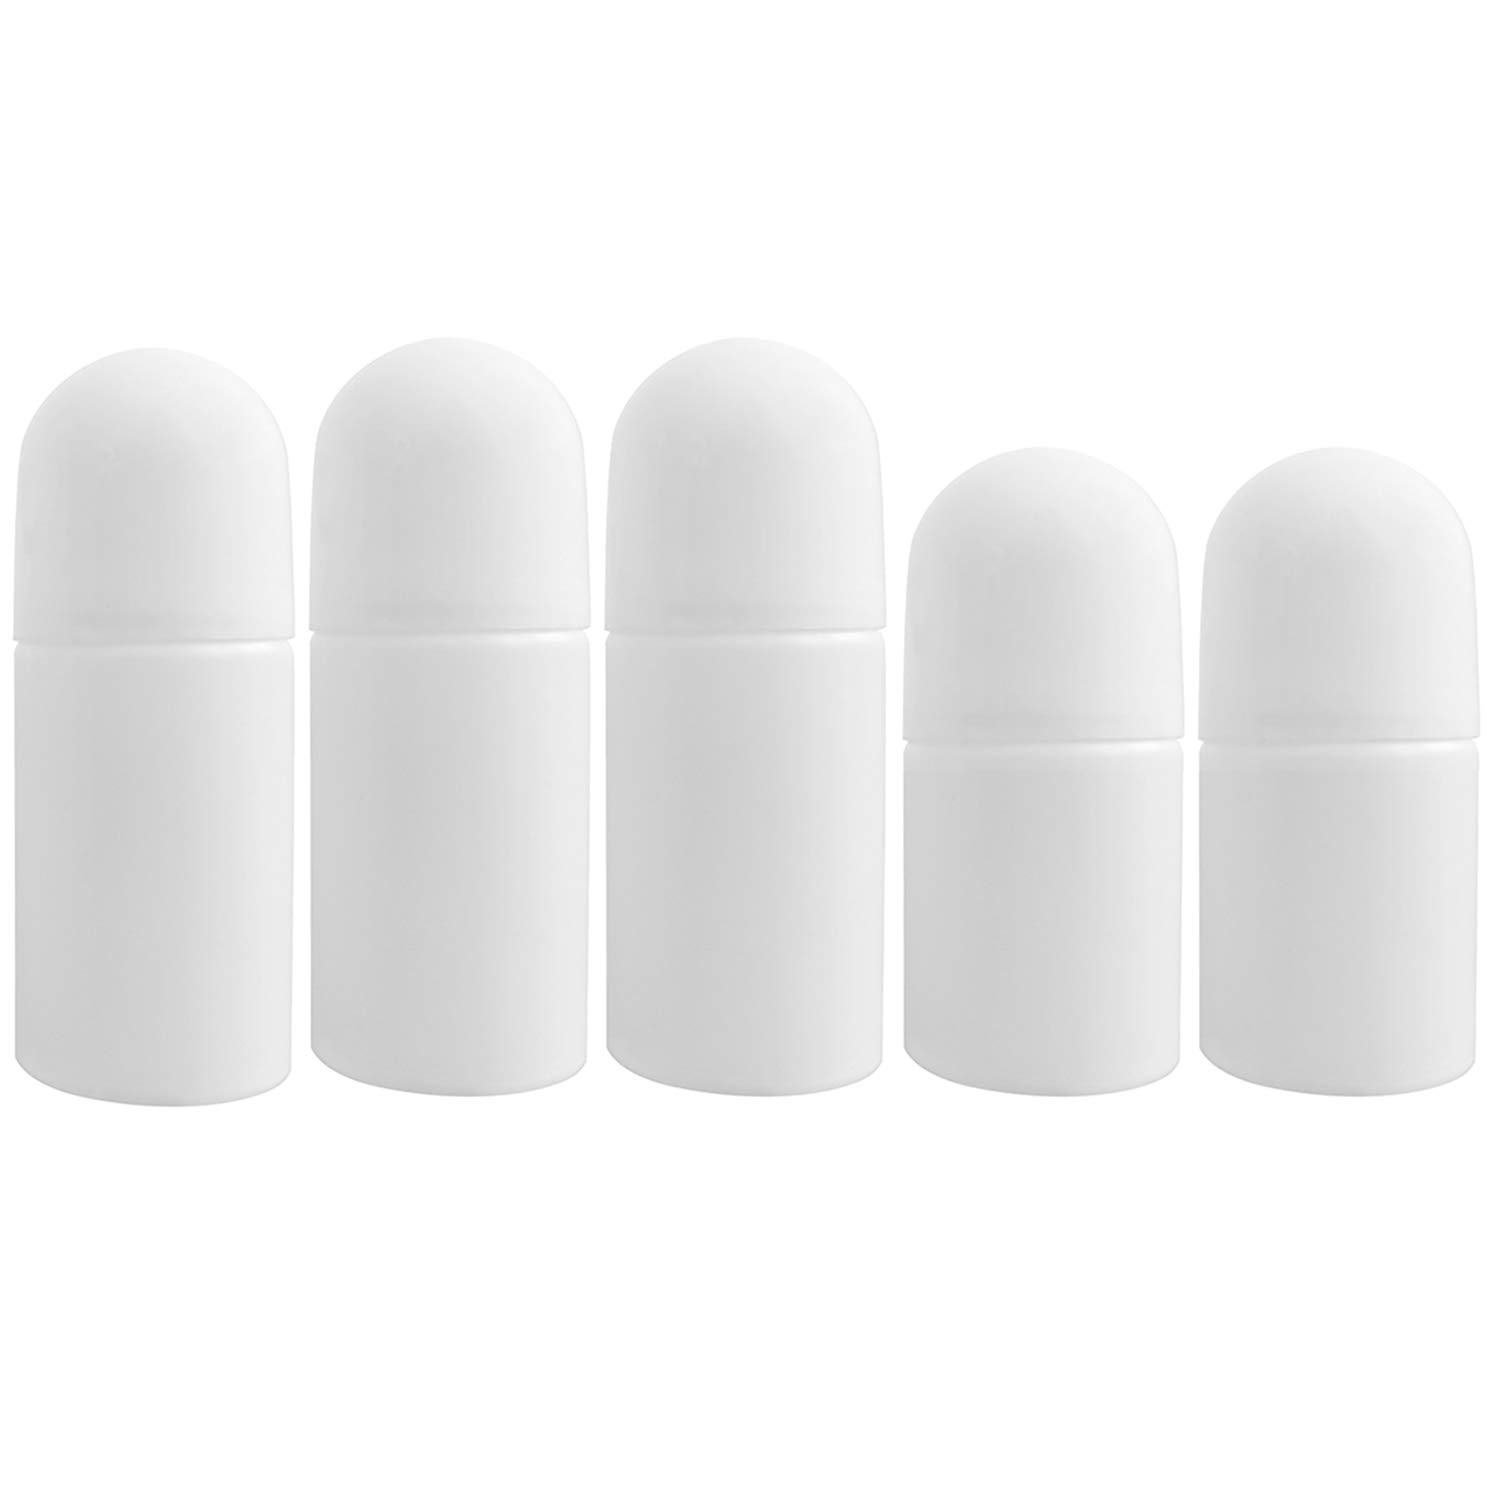 Empty Roll On Bottles for Deodorant - 5 Refillable Containers - Large & Travel Sized |